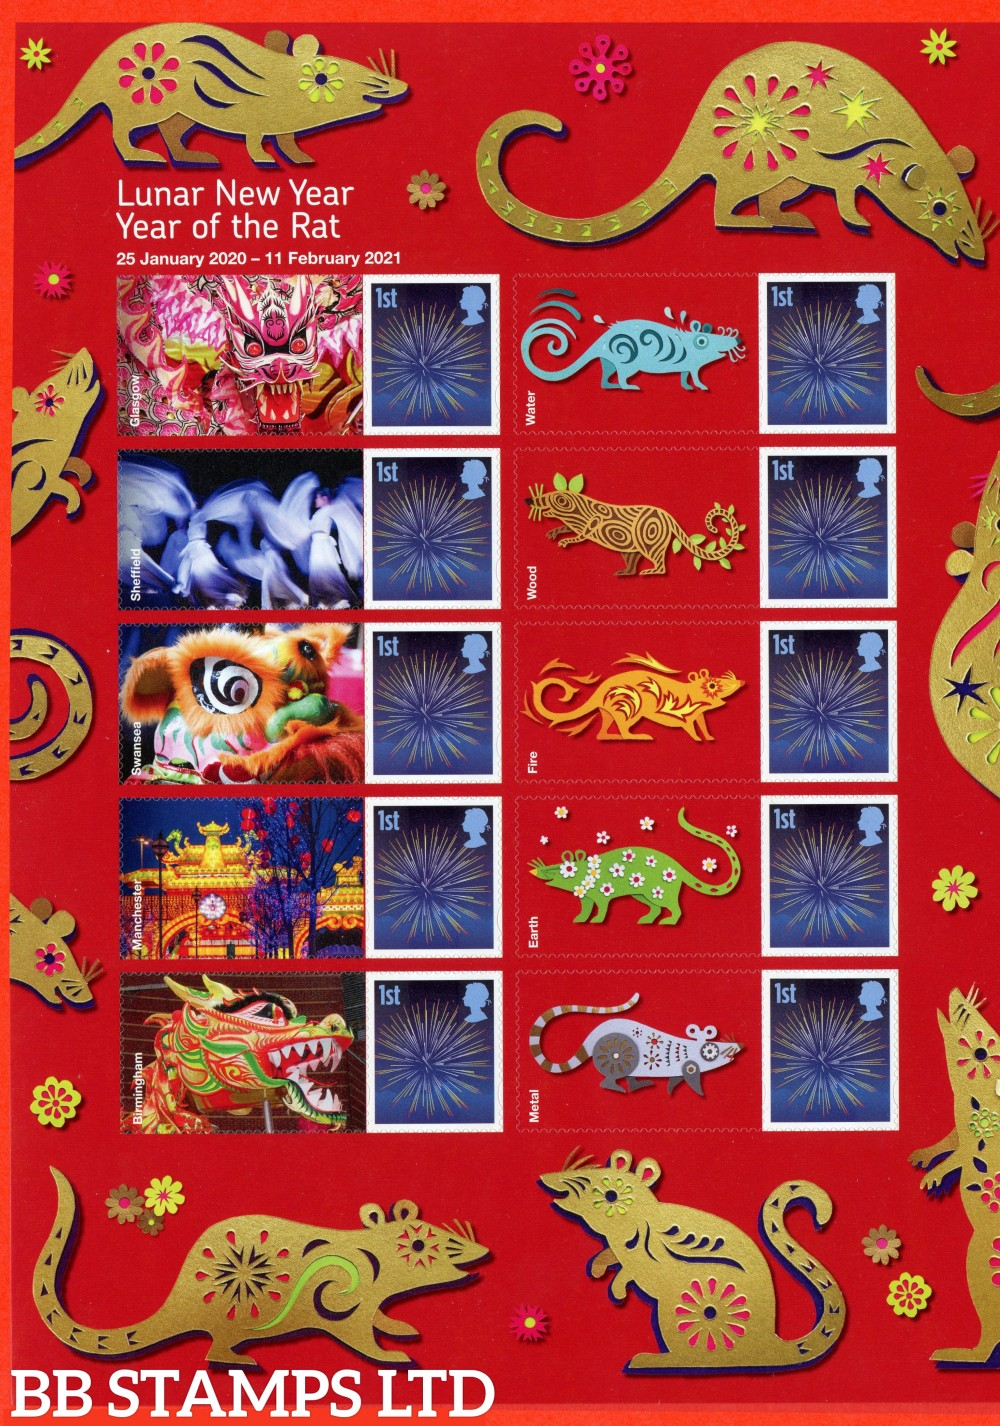 Year of the Rat half sheet of 10 with labels. Half supplied may vary from the one shown. Stamps as self adhesive  Printed in Litho. For Complete Sheet, see Smilers Sheets 18.11.19